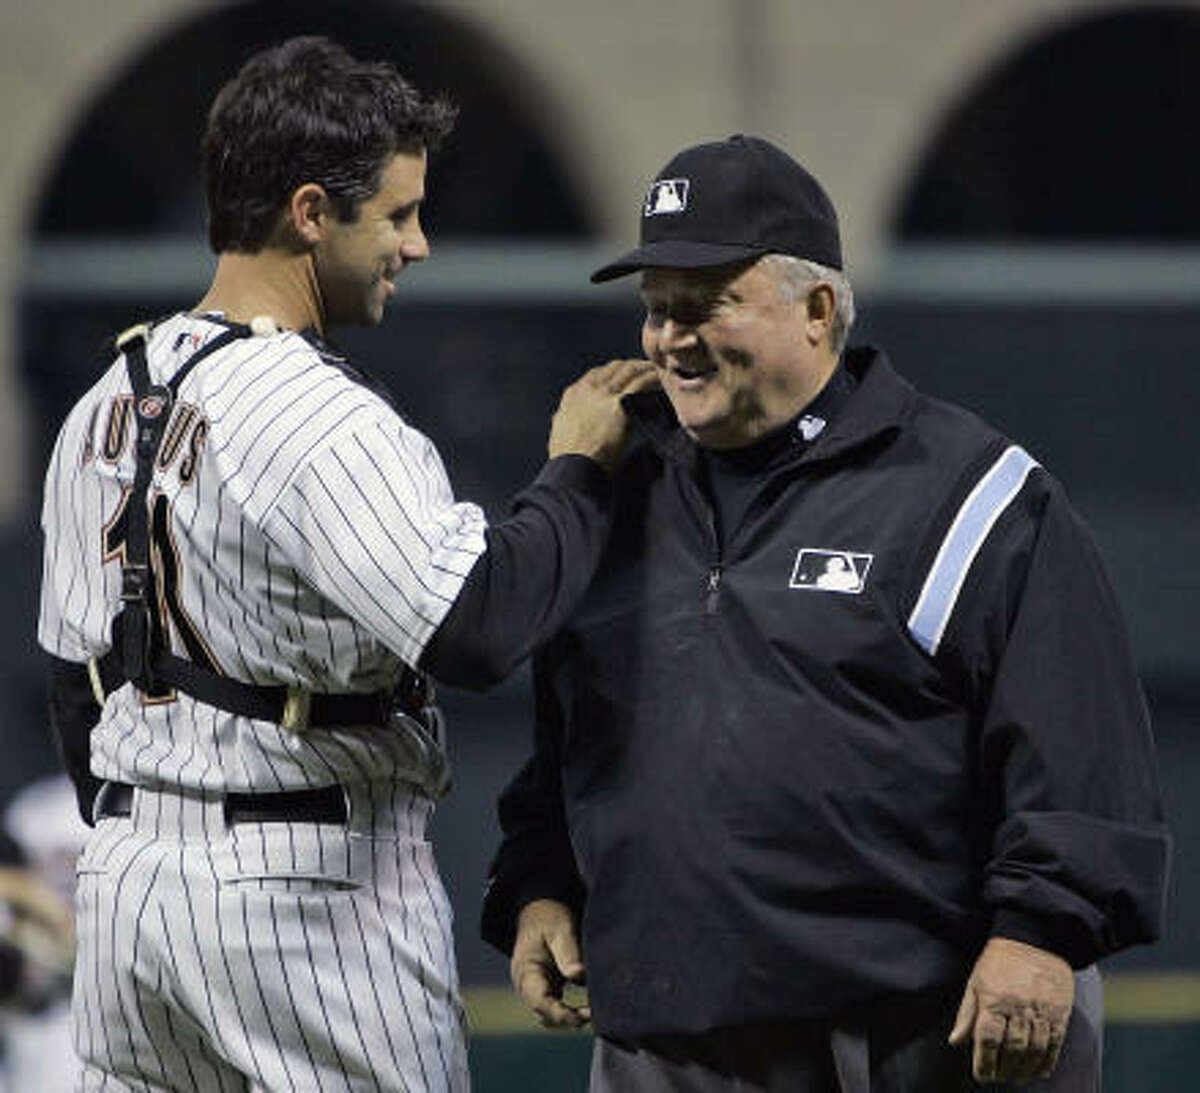 Bruce Froemming, right, is congraulated by Brad Ausmus as he was honored for the most consecutive (37) years of service as a major league umpire.